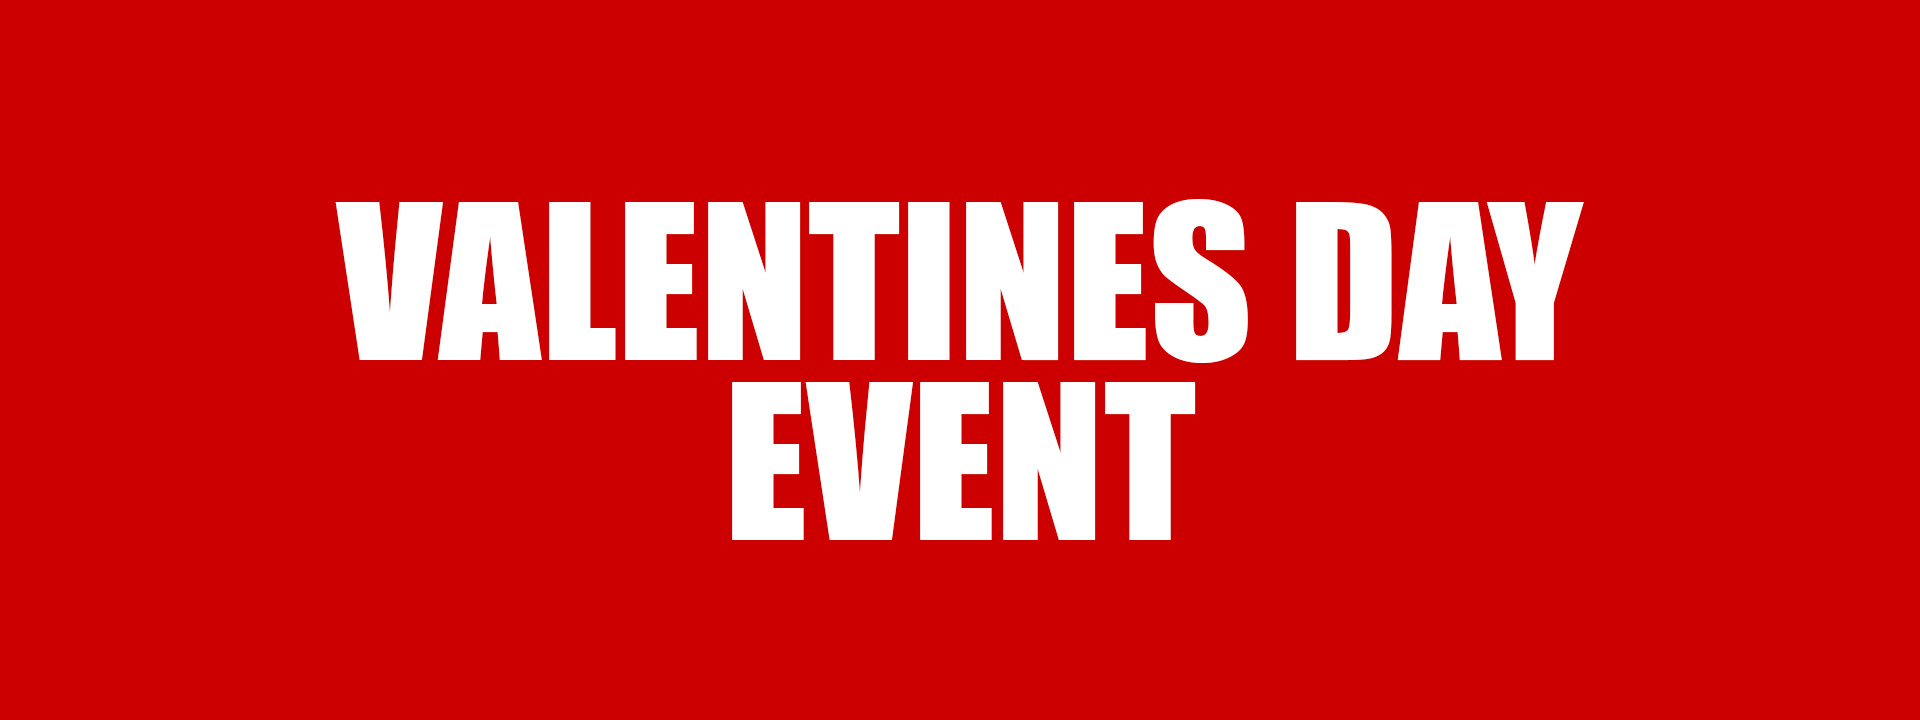 Valentines Day Event Atbshop Skate Warehouse